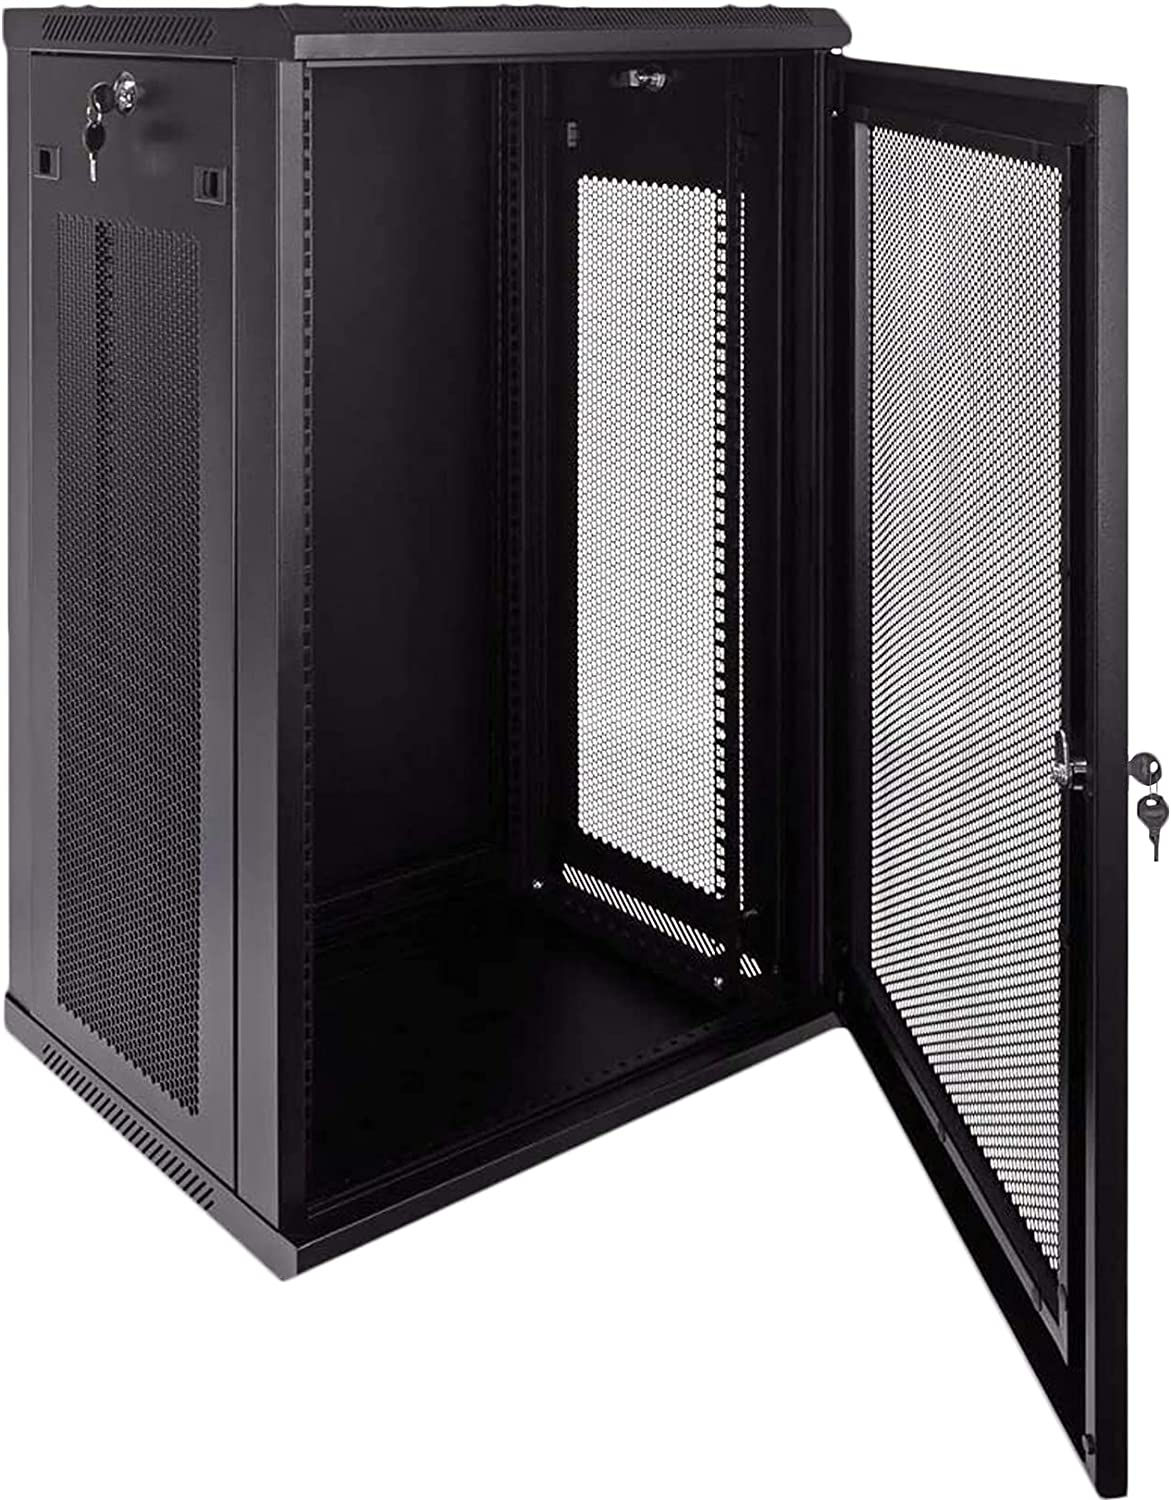 18U Wallmount Cabinet Enclosure 19-Inch Server Network Rack with Locking Perforated Door, Removable Locking Side Panel (Black)